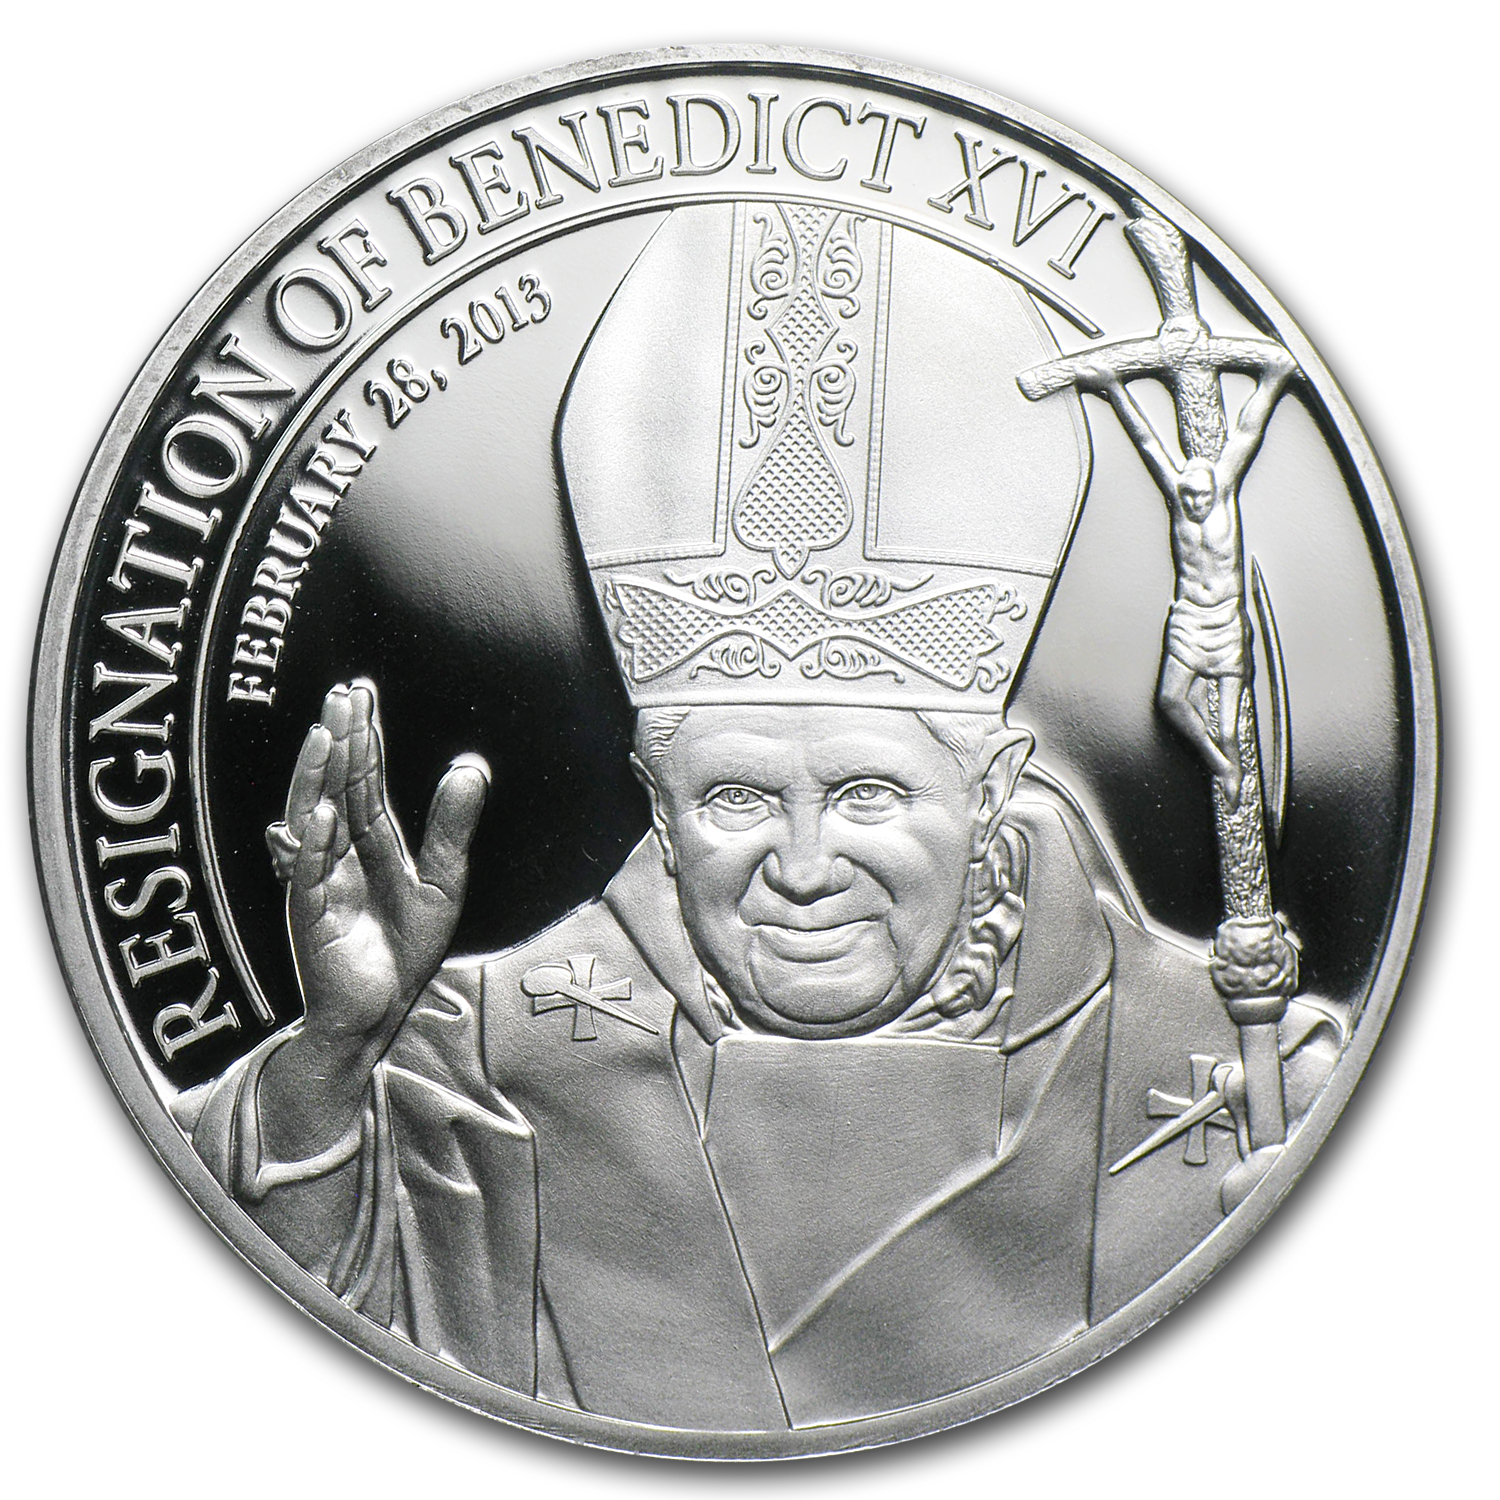 2013 Cook Islands Silver $5 Resignation of Pope Benedict XVI